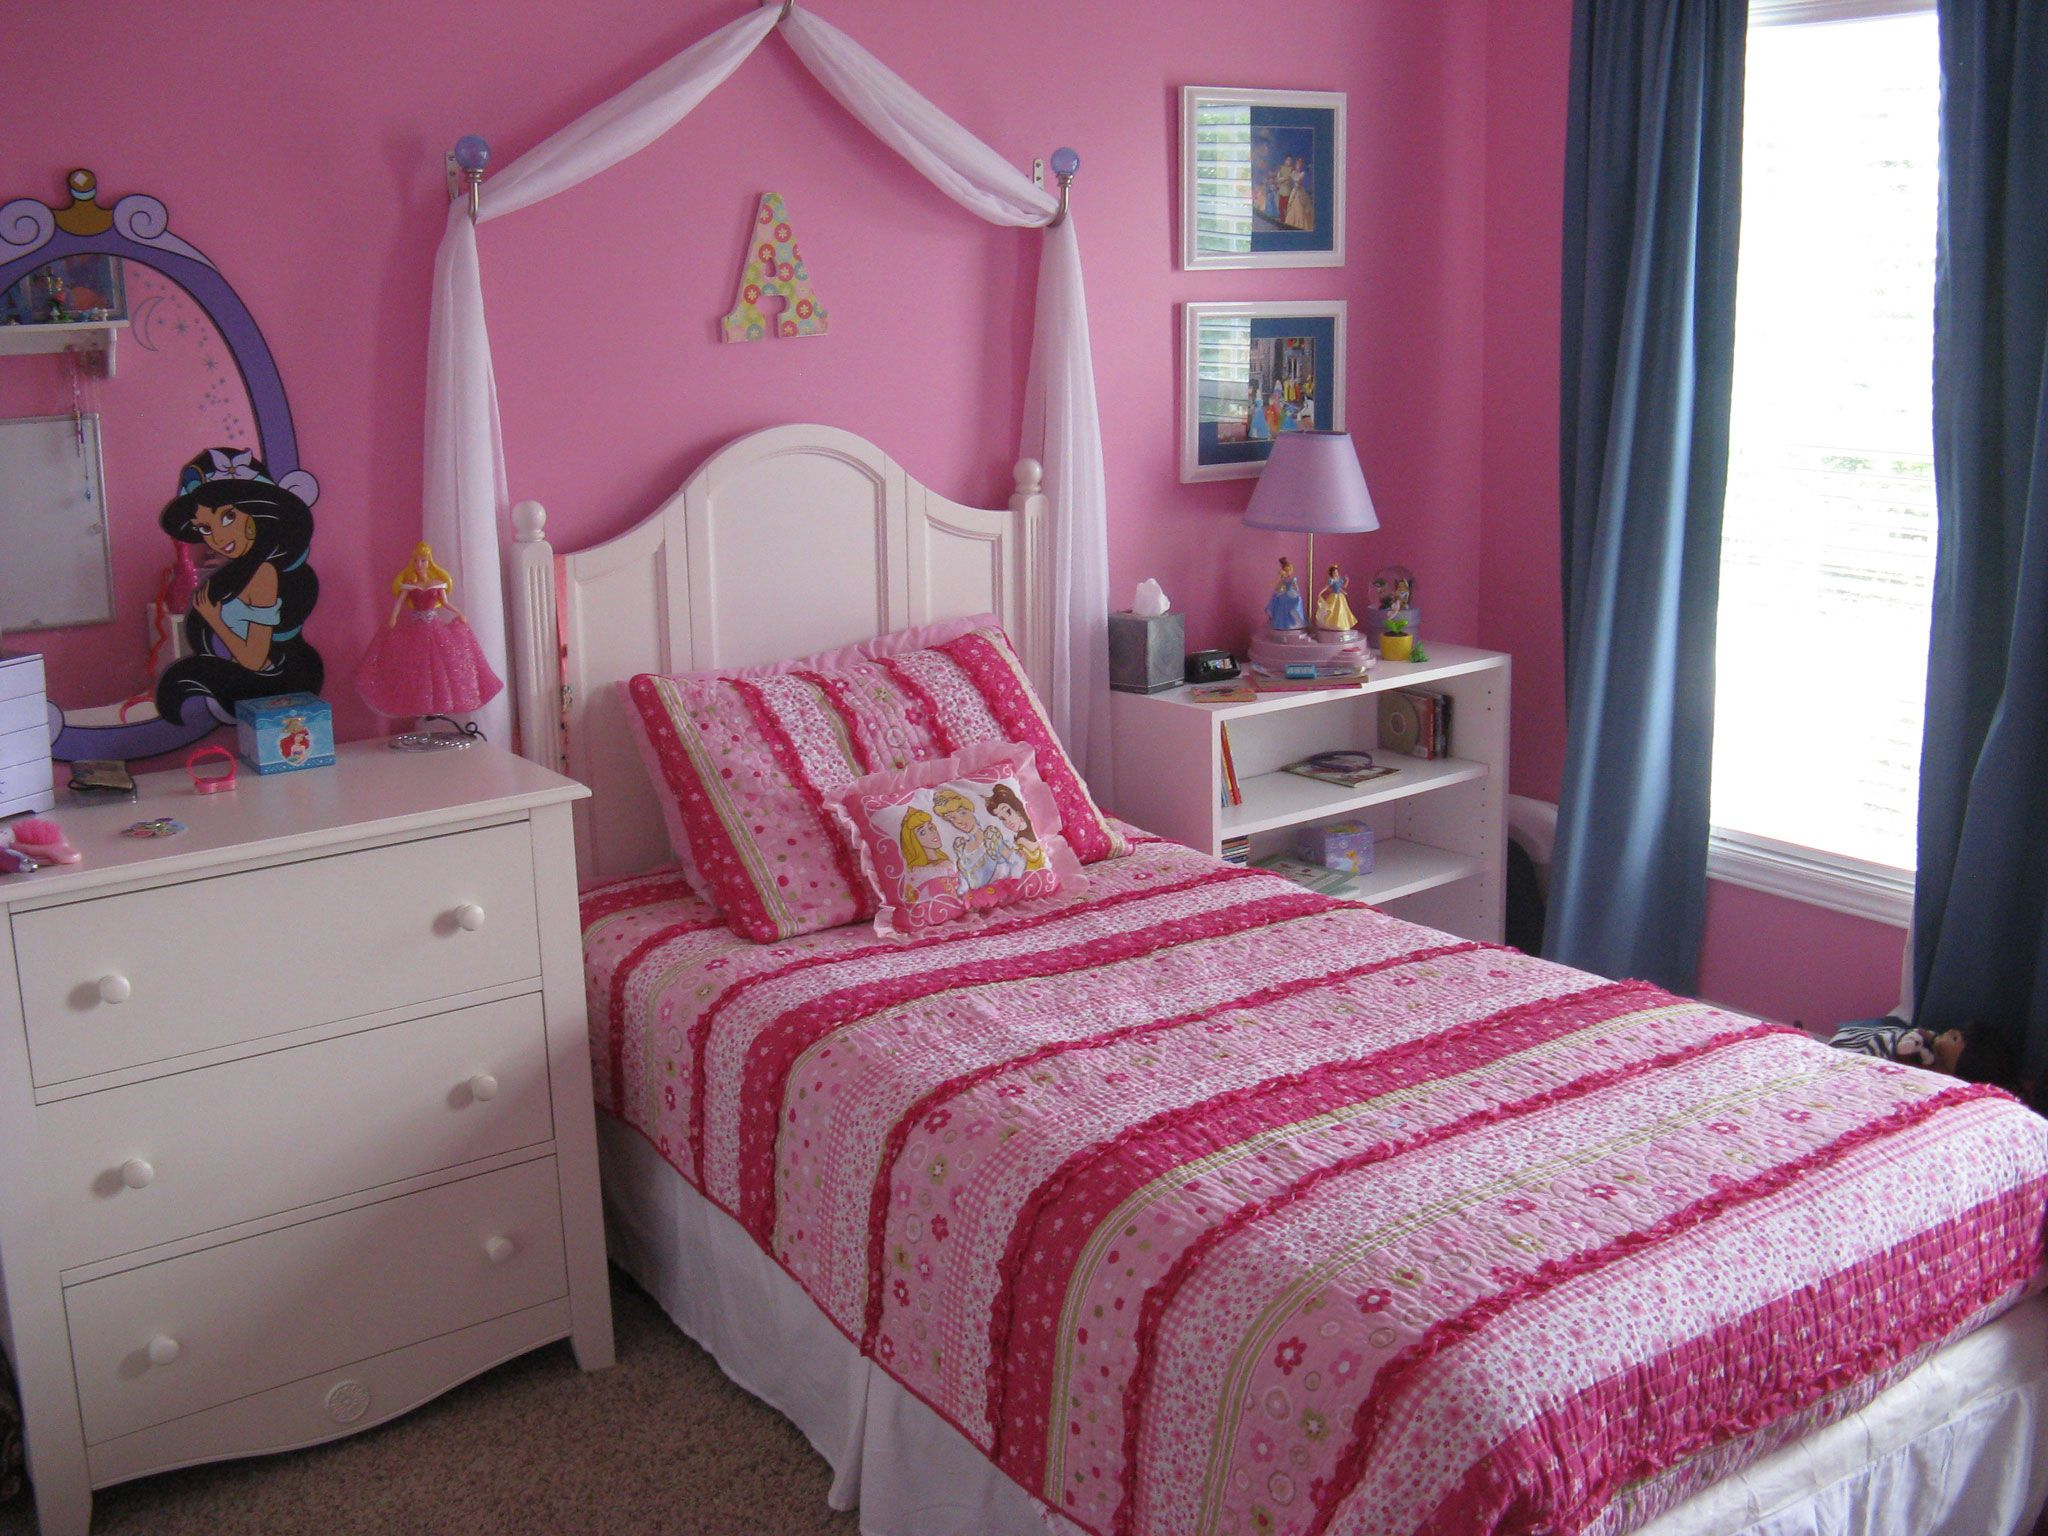 Attractive Dazzling Girls Bedroom Pink Color Ideas With Single Beds As Well As Pink  Cover Bedding And